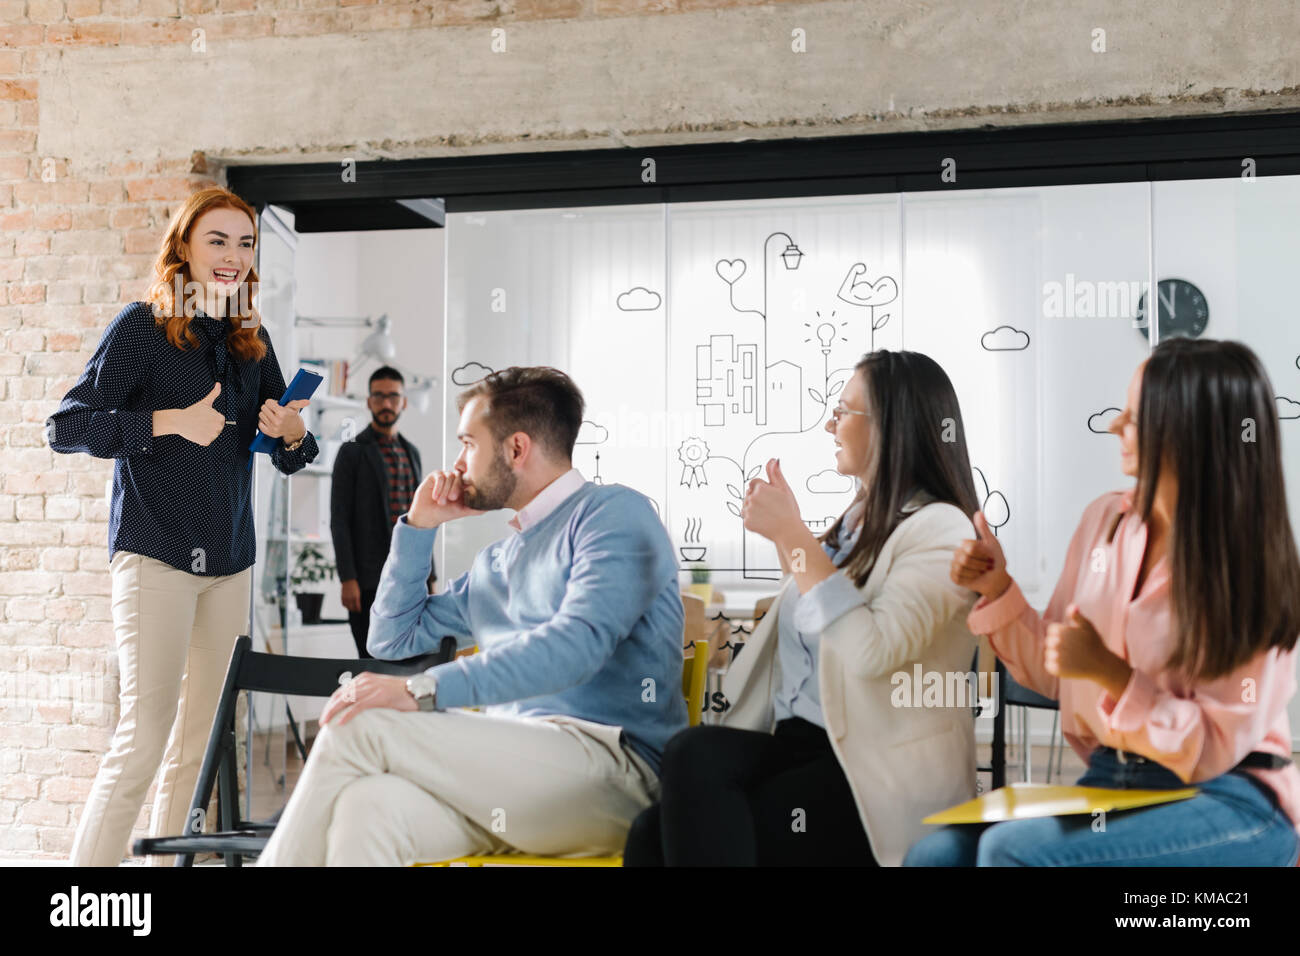 Good luck at a job interview - Stock Image